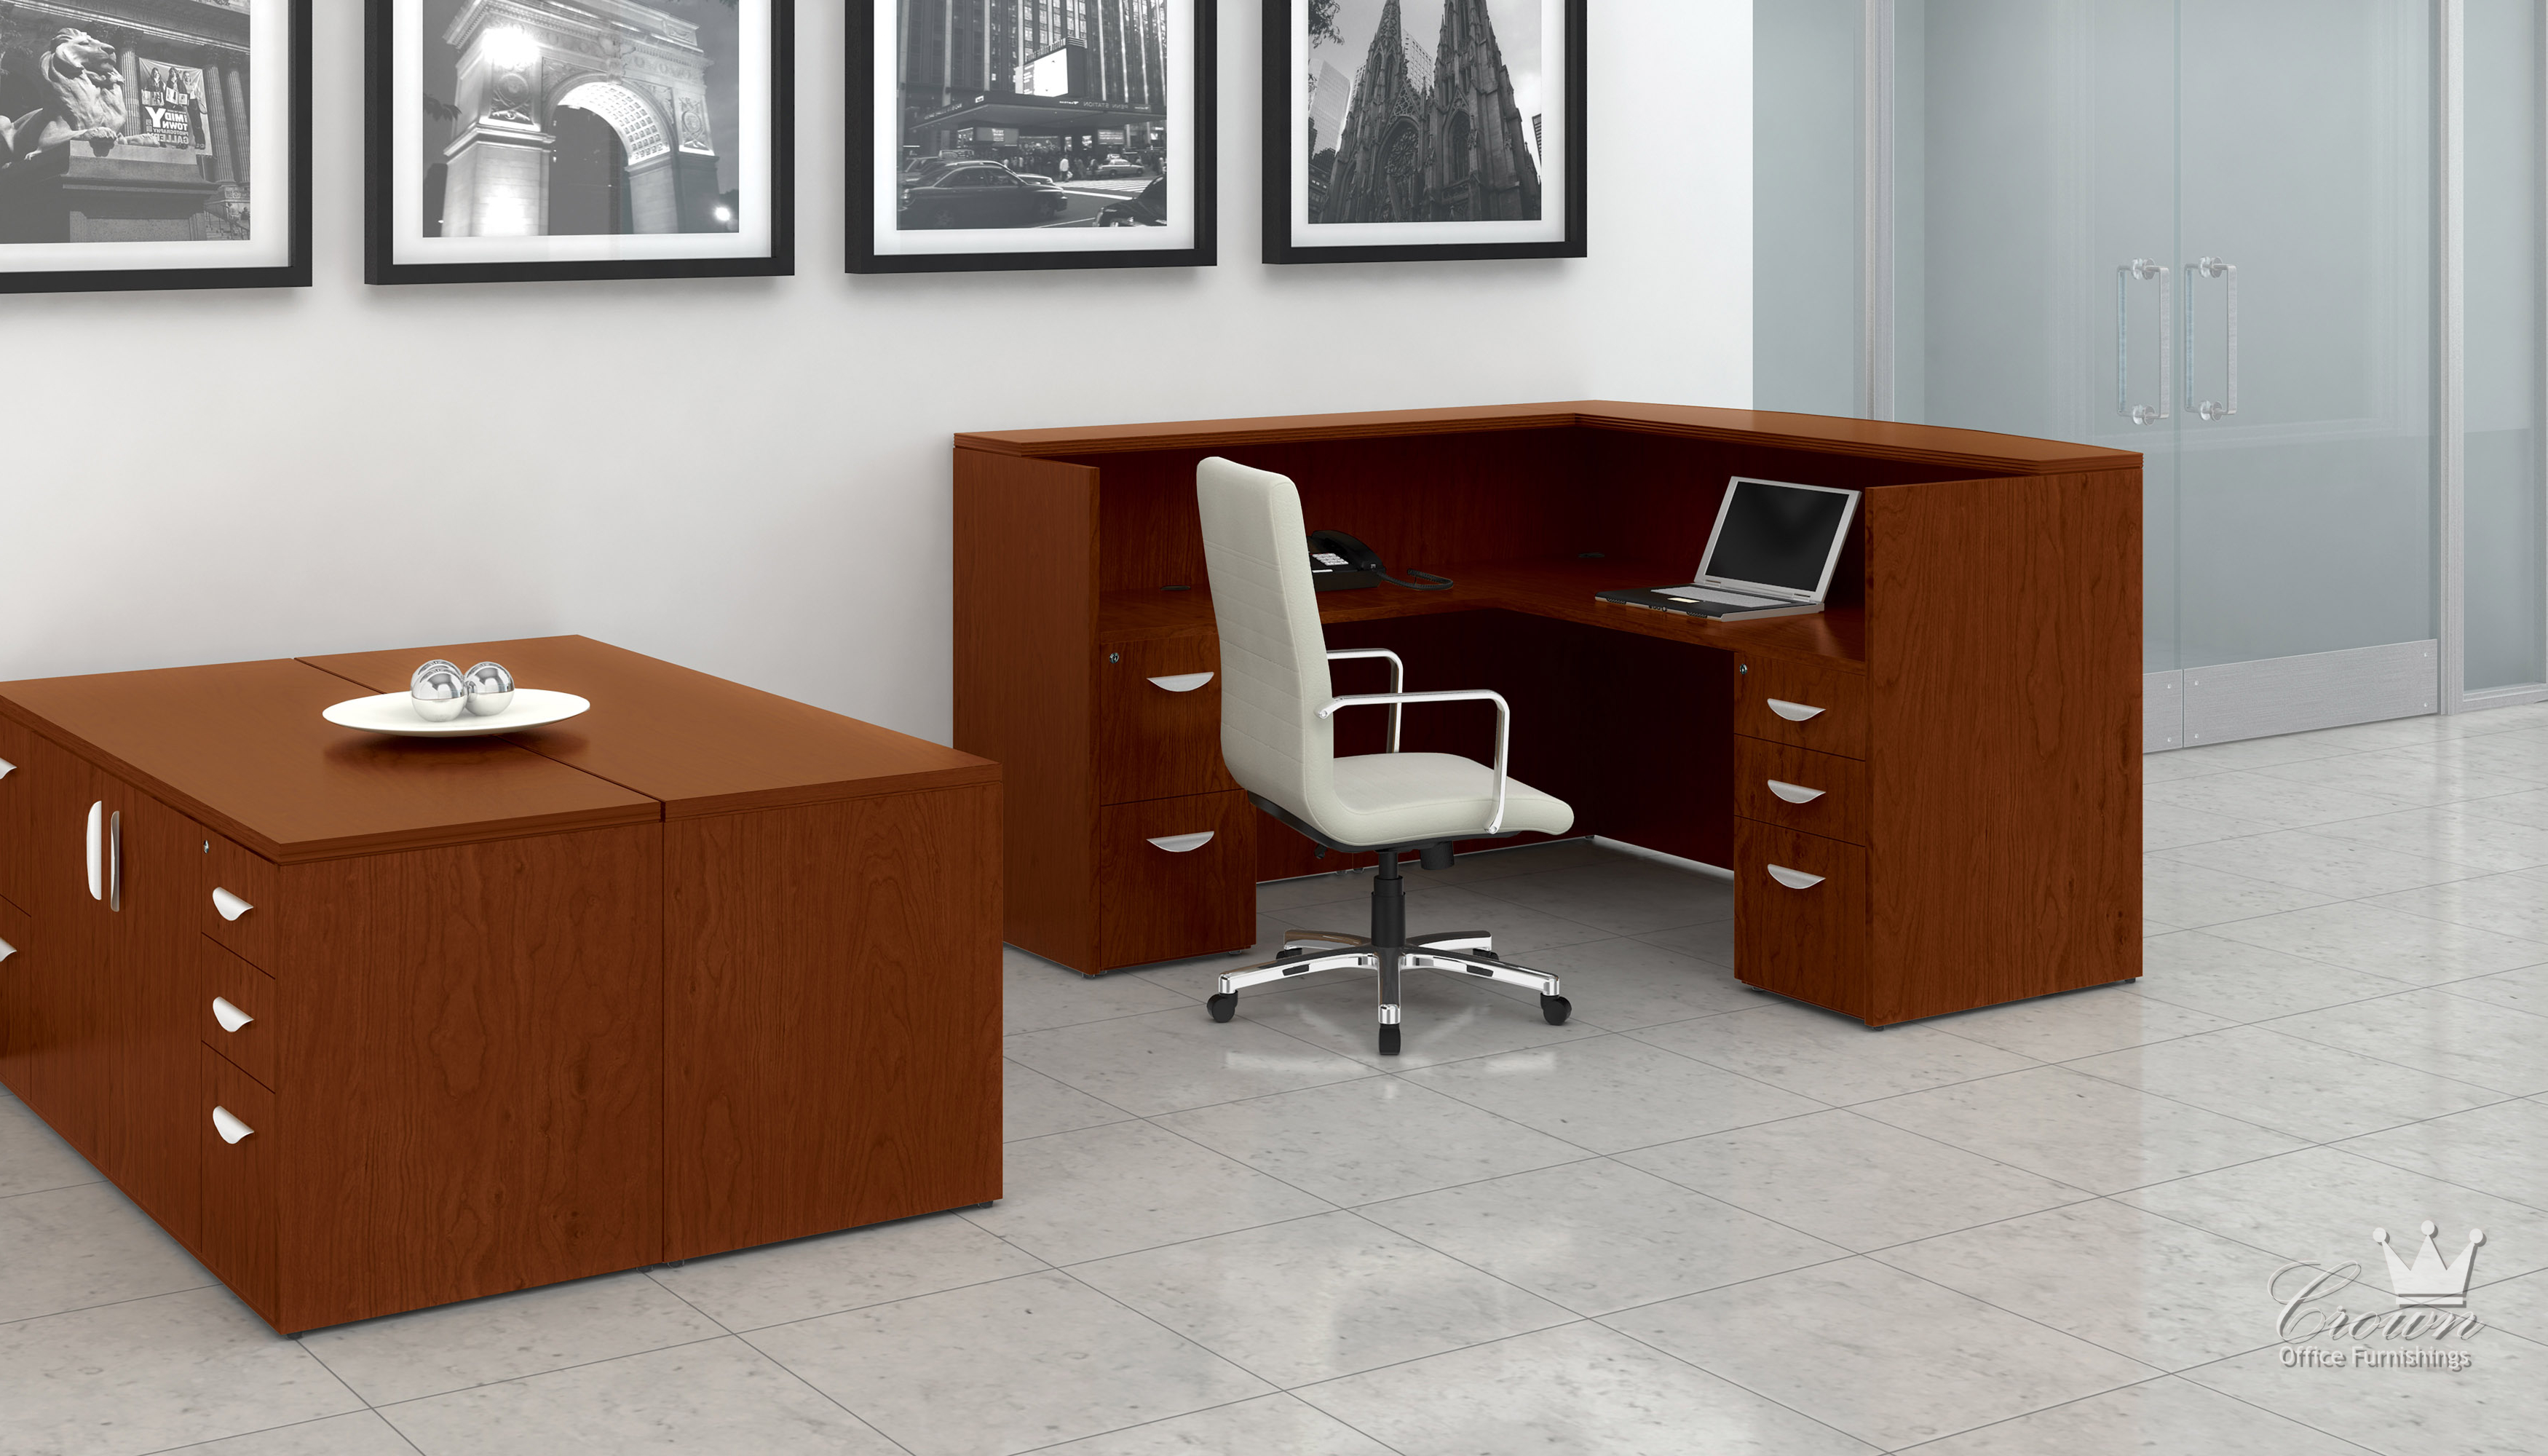 Ventnor Crown Office Furniture Tulsa Oklahoma